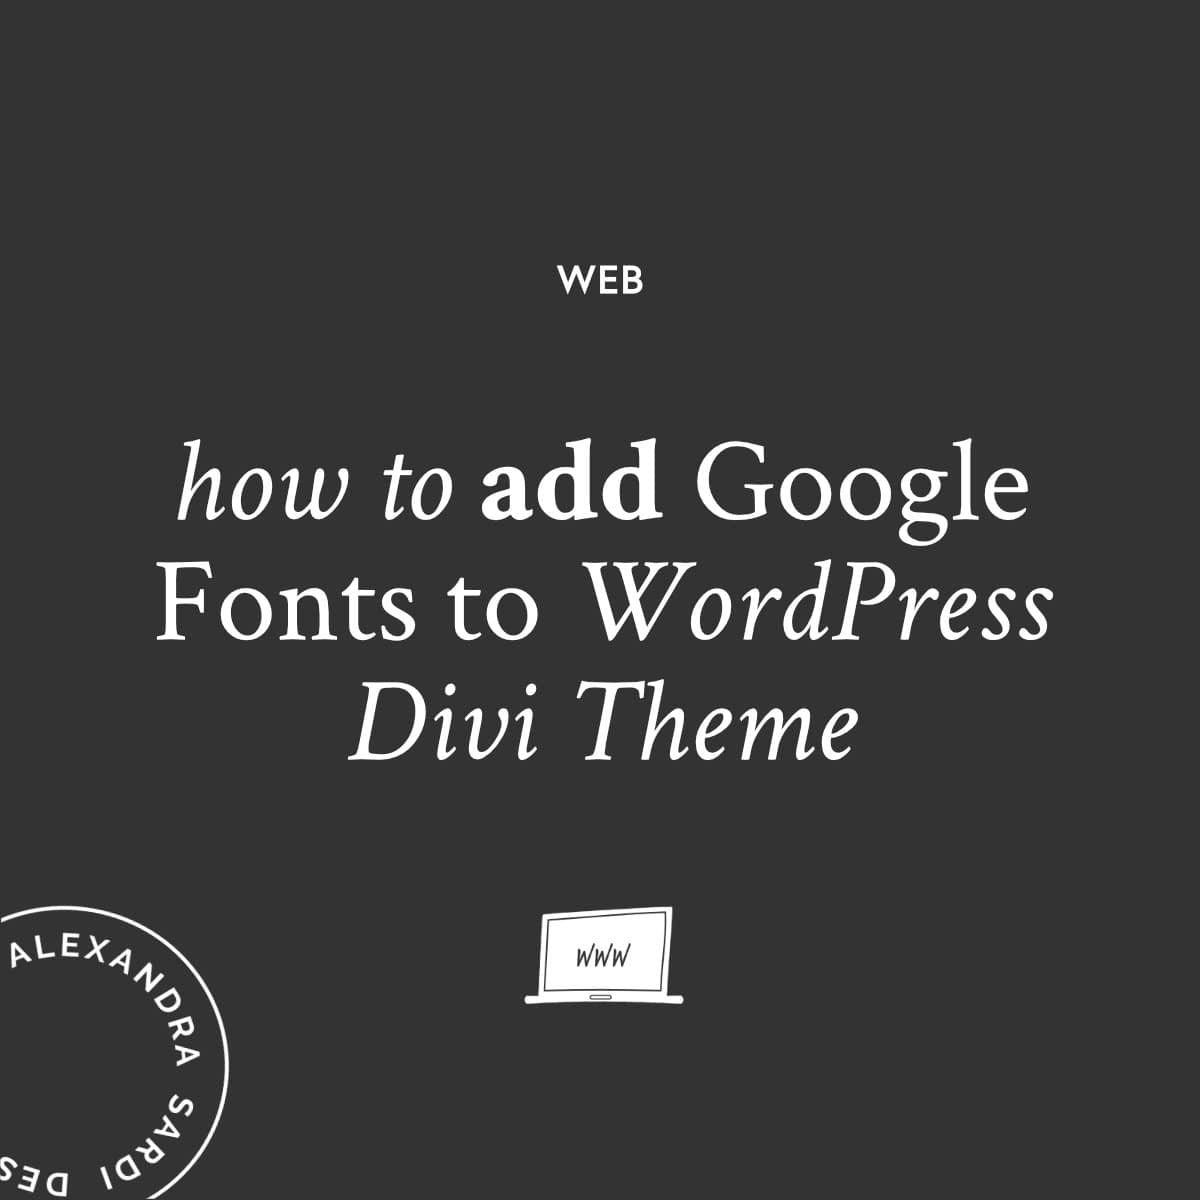 How To Add Google Web Fonts To WordPress Divi Theme